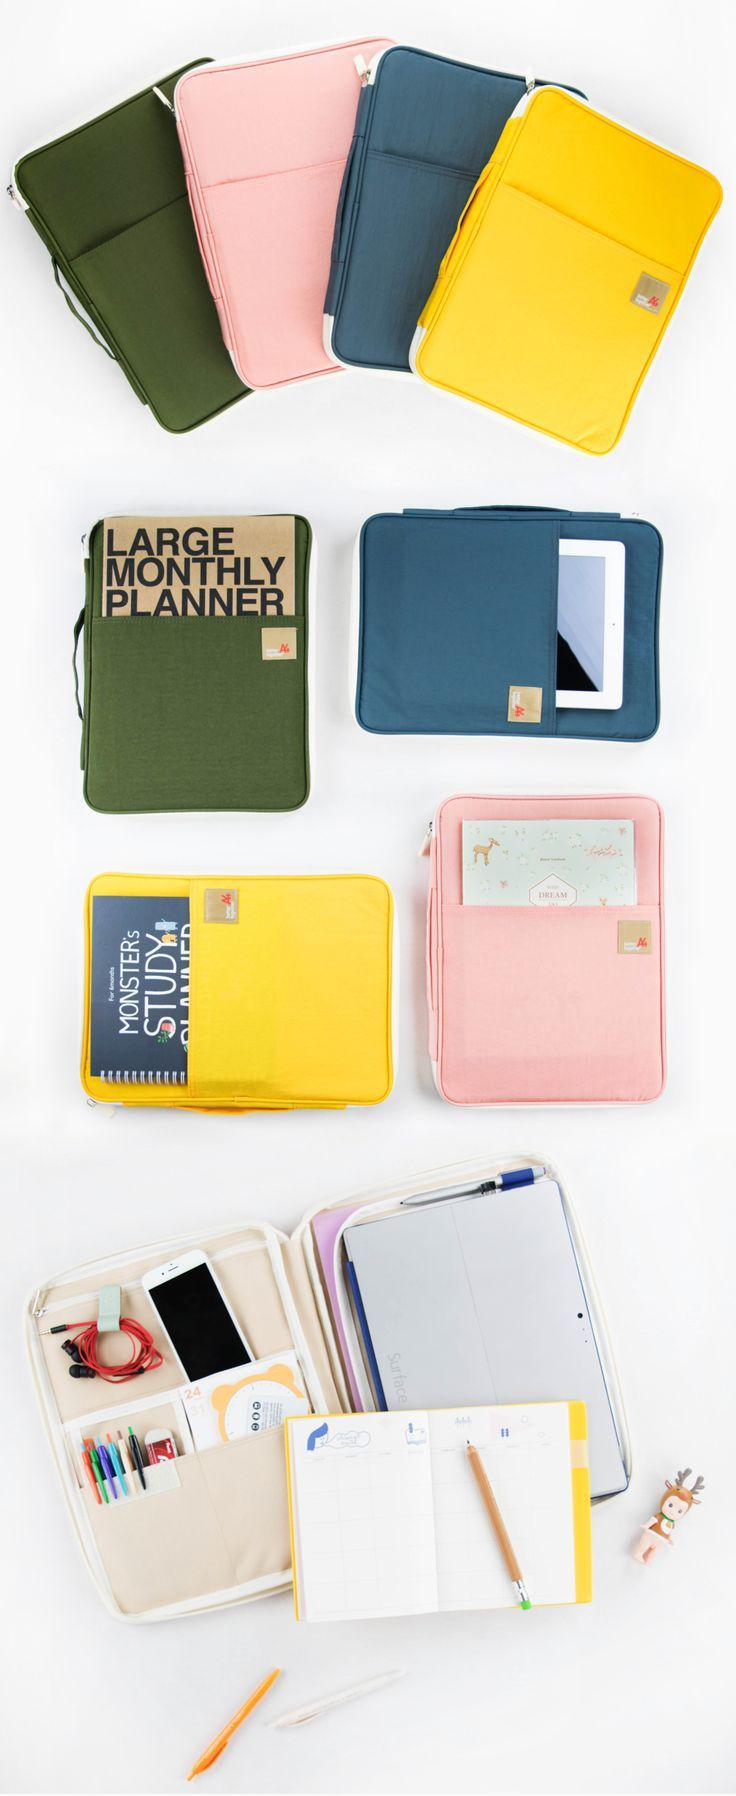 """Need a new way to stay organized this school year? The Better Together Note Pouch v5 is the best way to organize all your school supplies and devices in one neat accessory. Hold your iPad, notebooks, assignments, pens, sticky notes, and more in this cute pocket-filled carry all! It can even fit a 13"""" Macbook Pro in the main compartment! Zip up your study must haves in this portable pouch and head over to class or the library. This all in one organizer will help you succeed, so go check it…"""